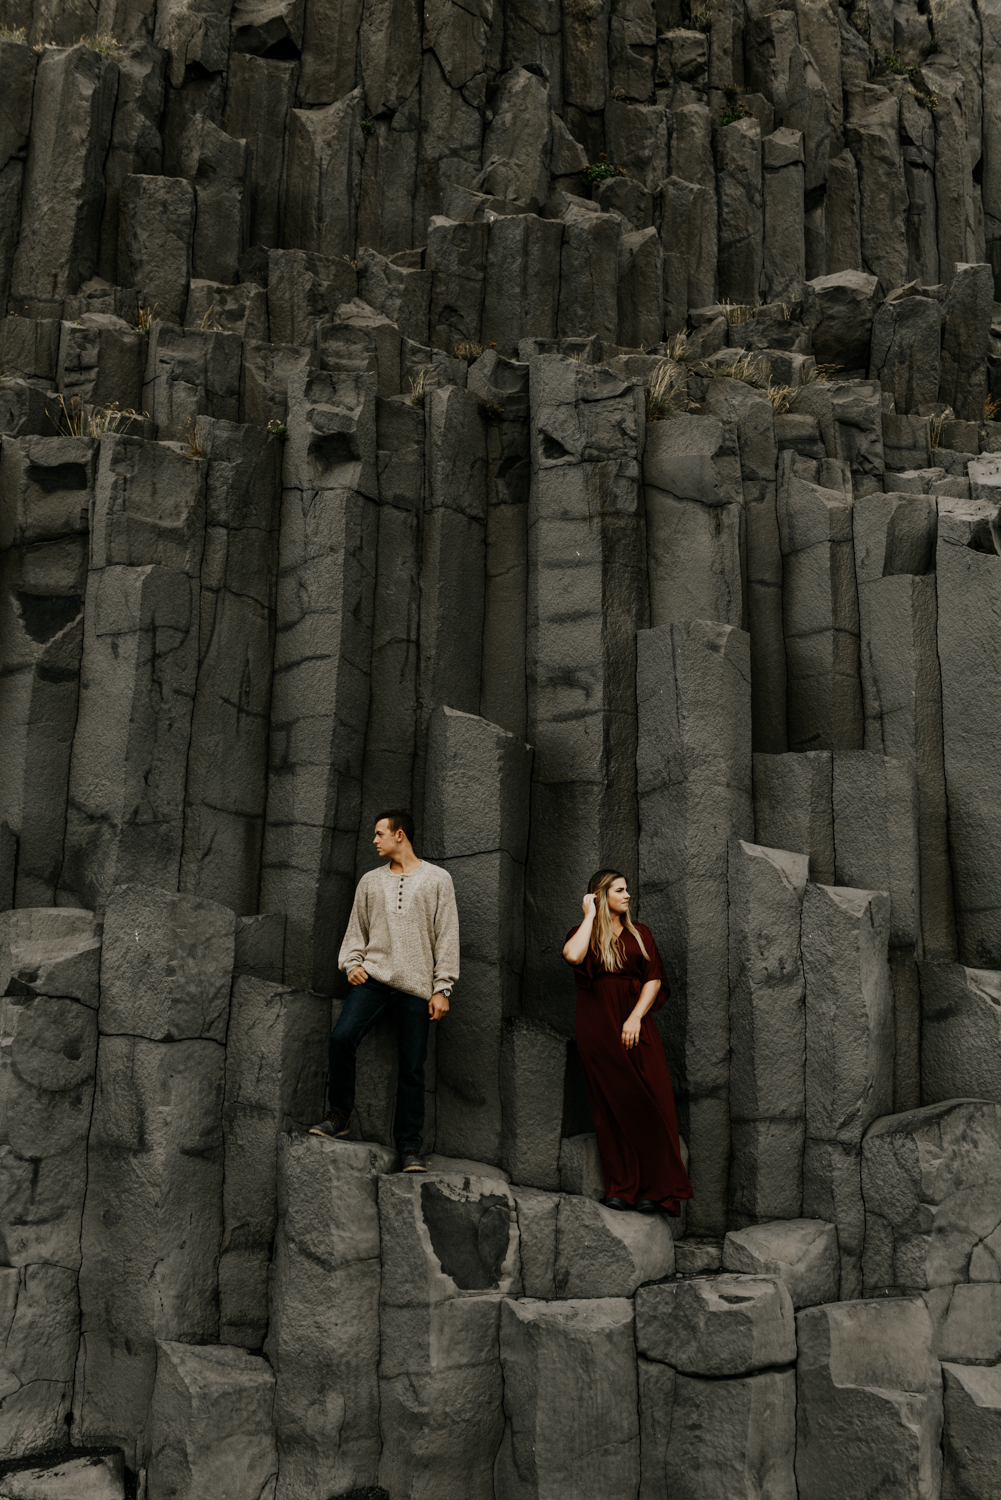 Vik, Anniversary Ideas and Adventure Photo session in Iceland